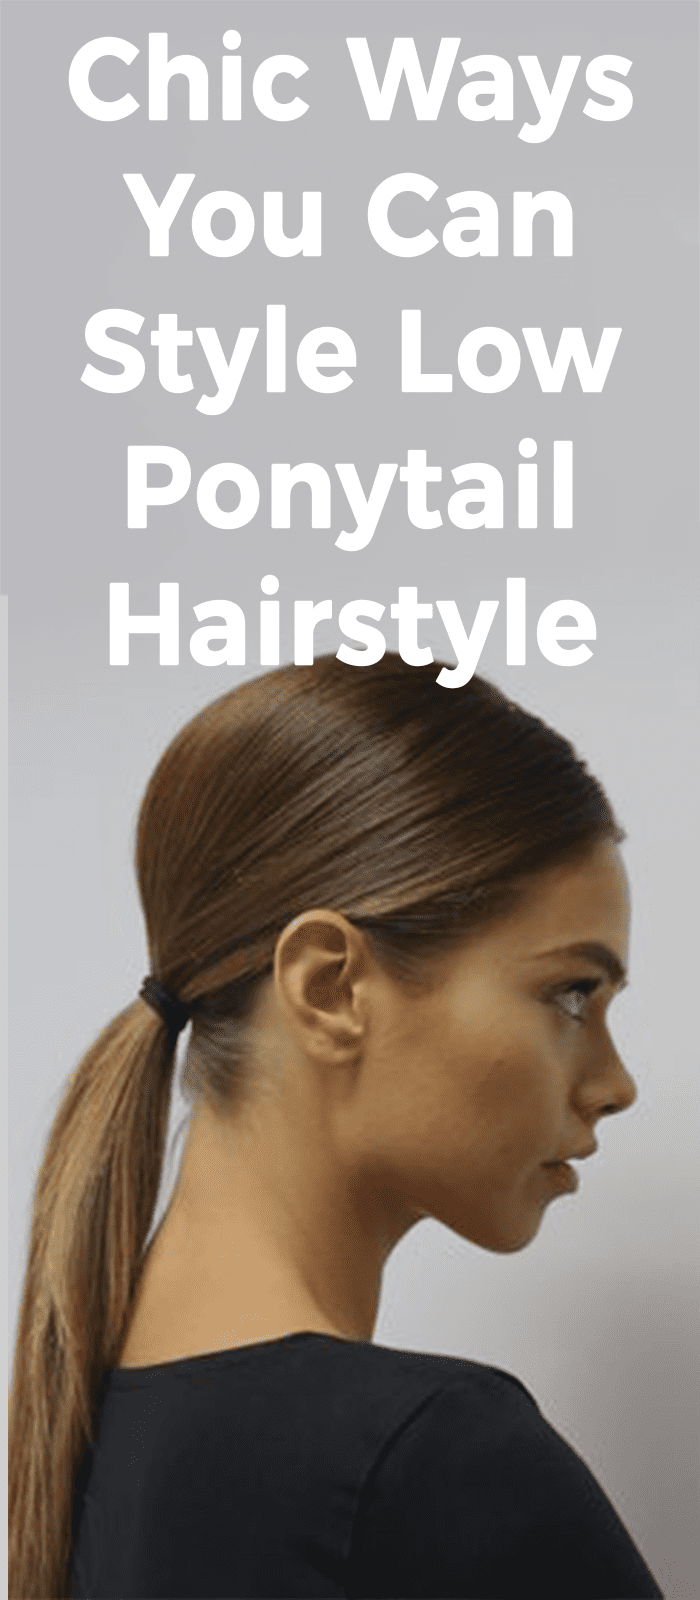 Chic Ways You Can Style Low Ponytail Hairstyles